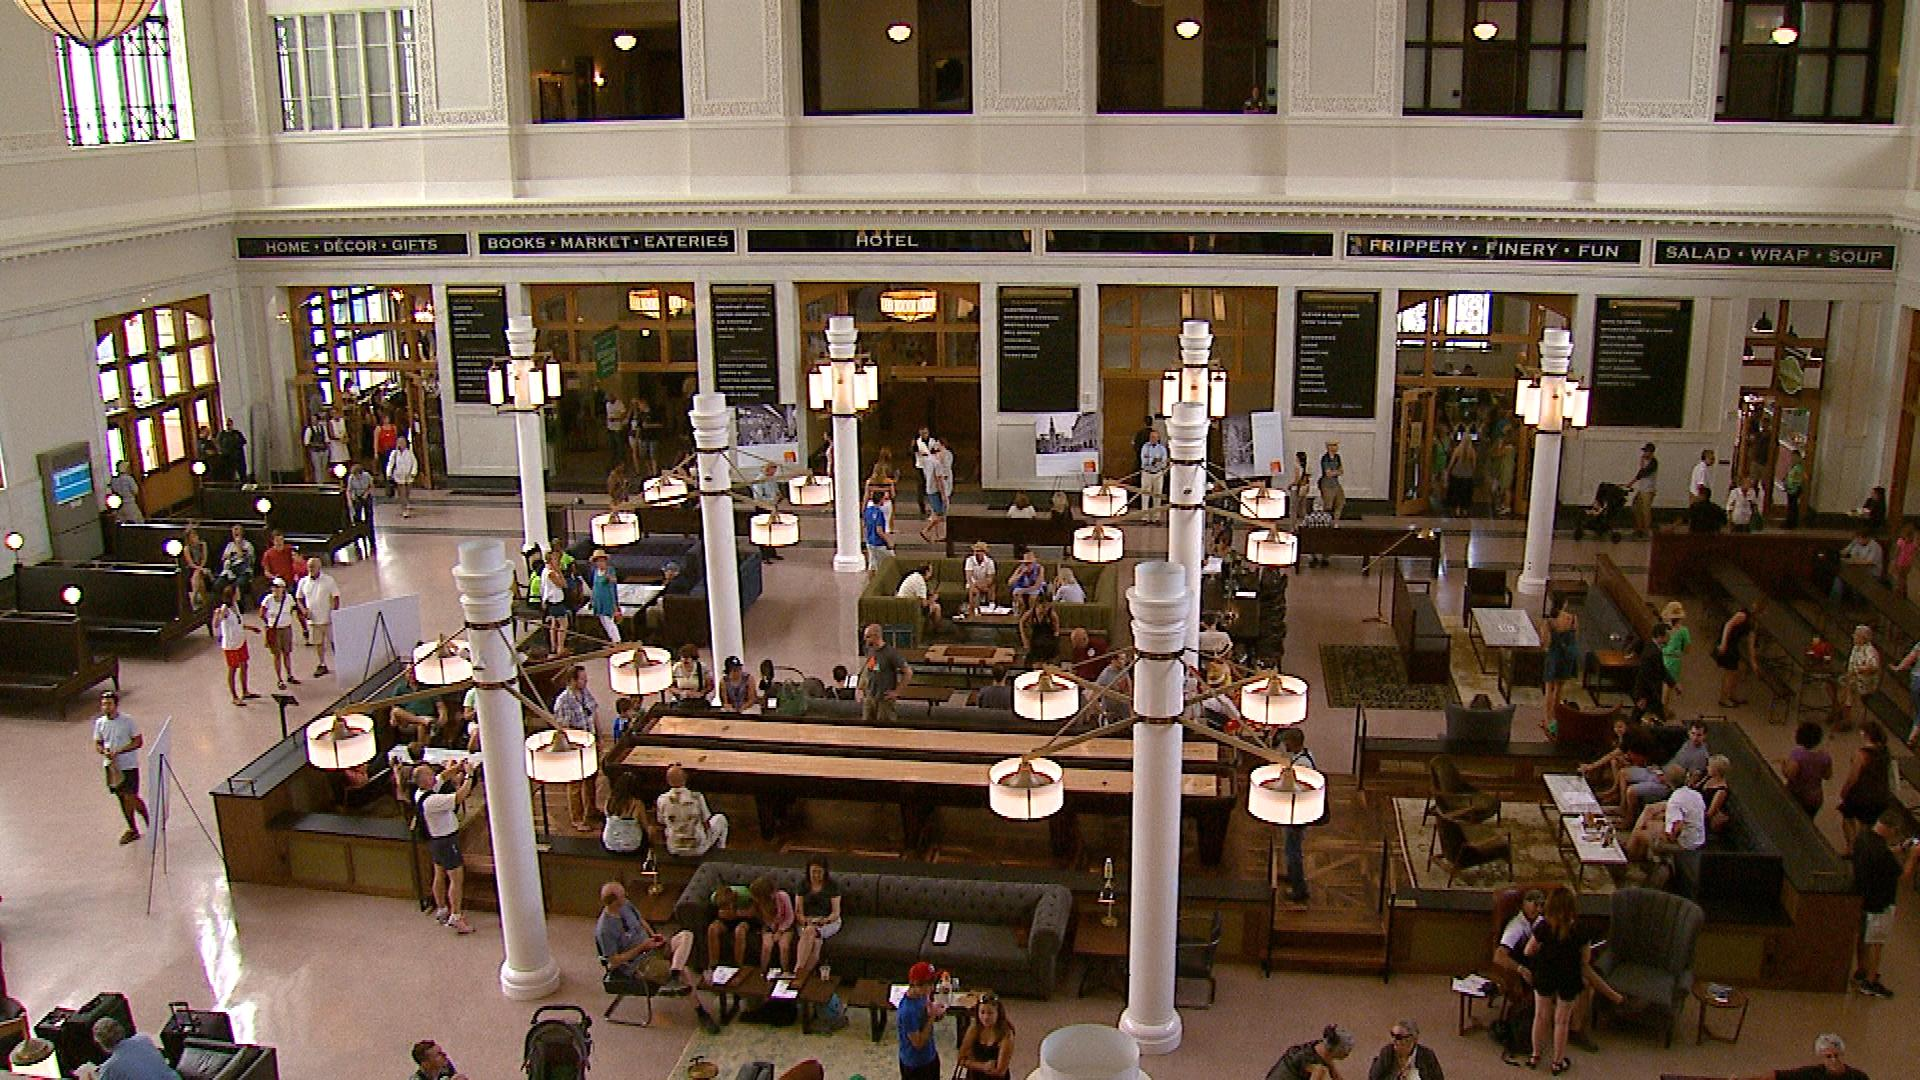 Inside Union Station (credit: CBS)